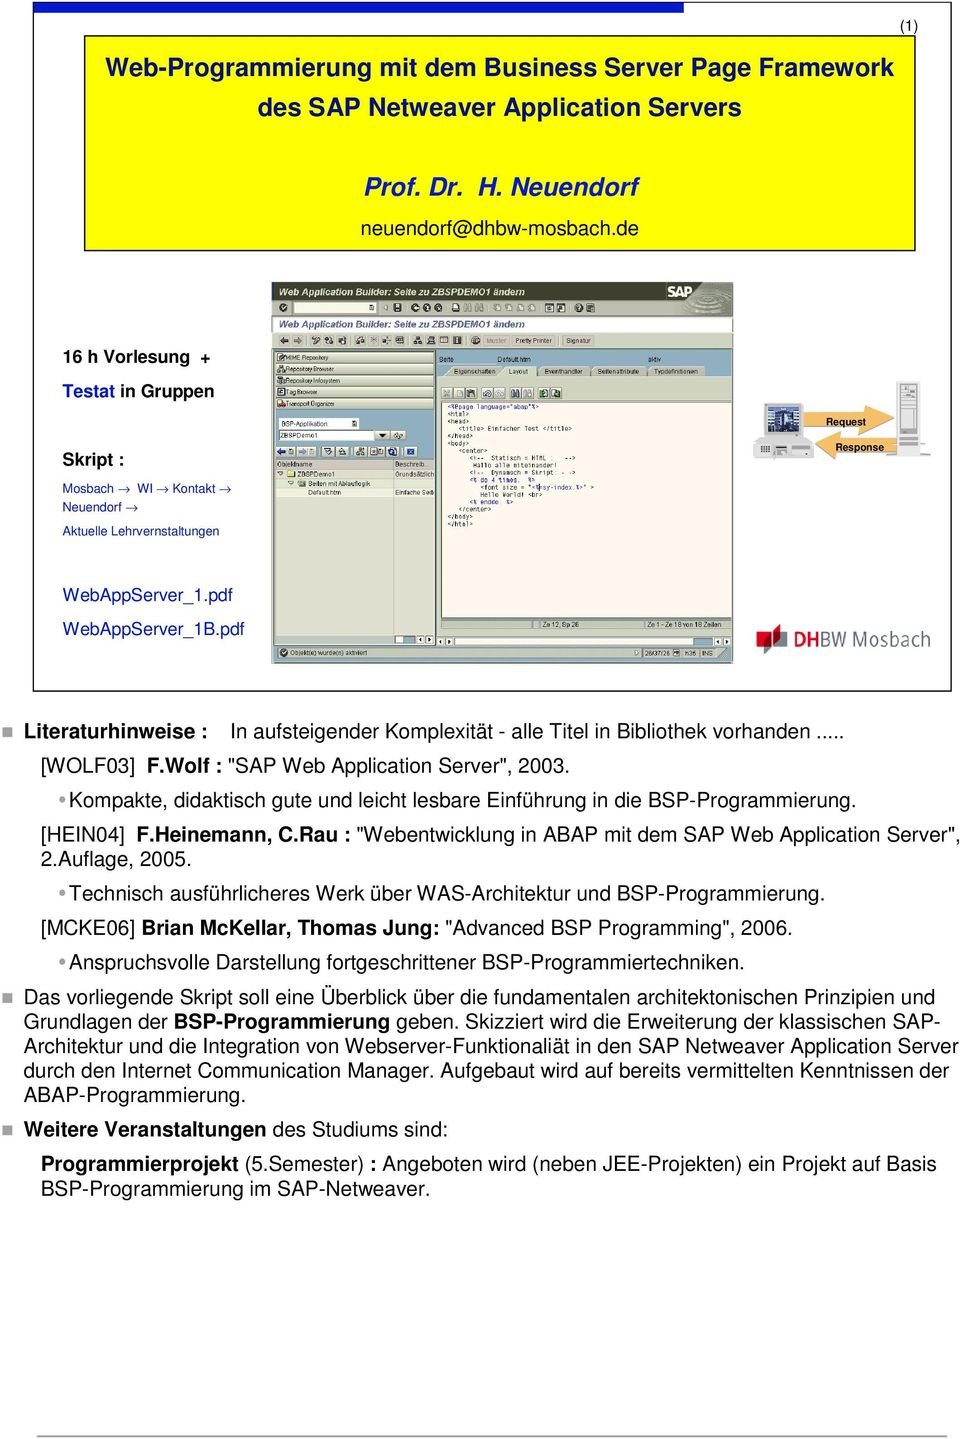 "pdf Literaturhinweise : In aufsteigender Komplexität - alle Titel in Bibliothek vorhanden... [WOLF03] F.Wolf : ""SAP Web Application Server"", 2003."